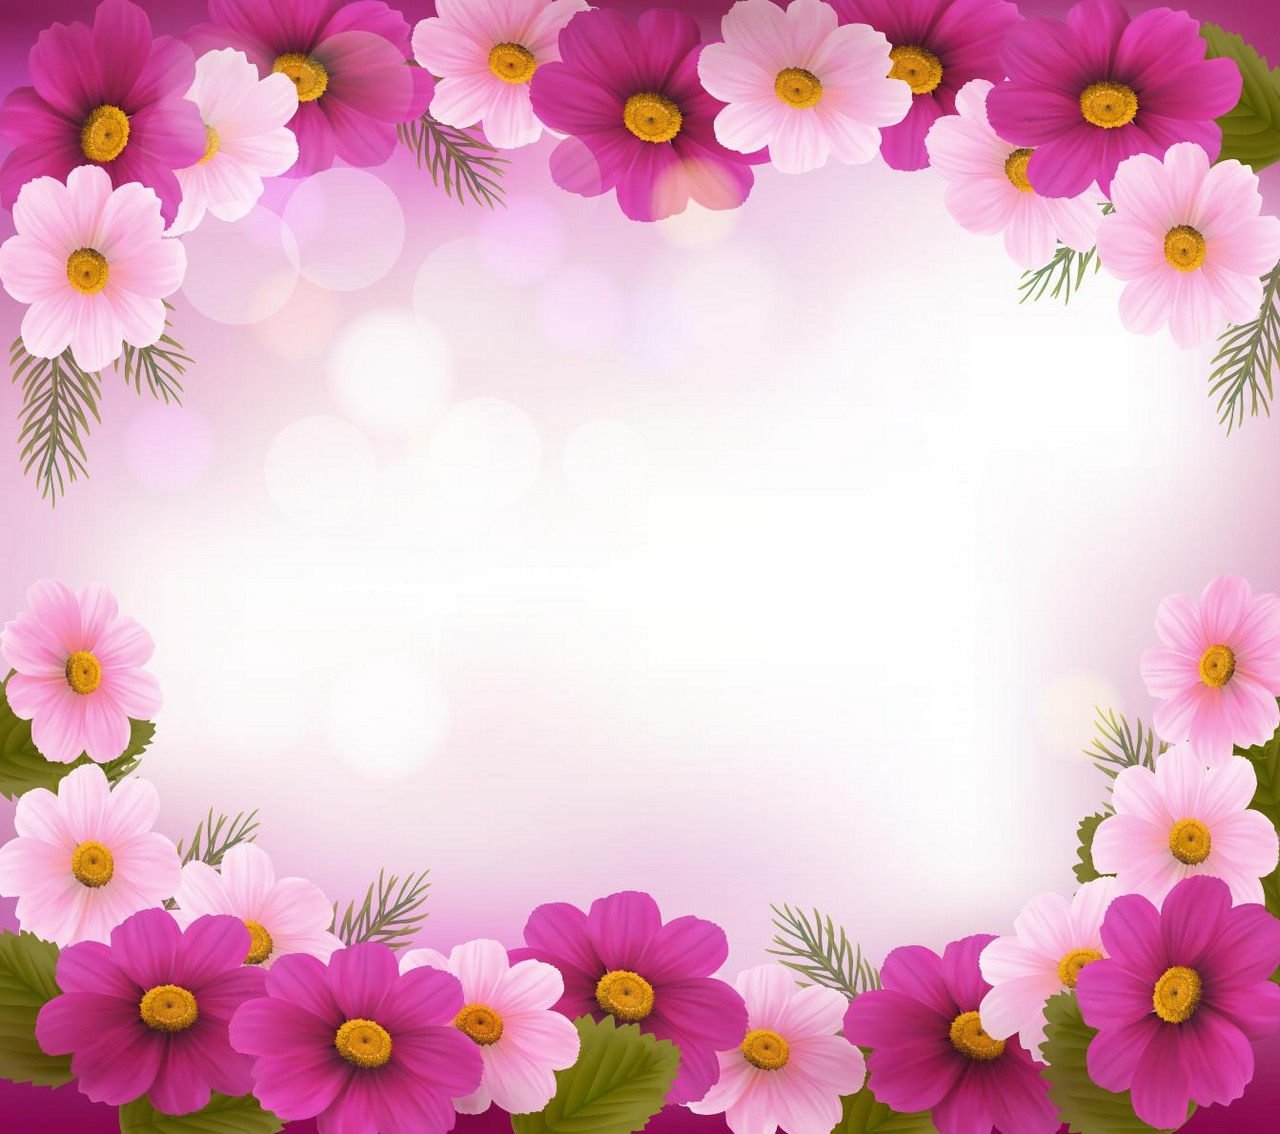 Pink Flower Background Pics Floral Background For Tarpaulin 1280x1134 Wallpaper Teahub Io